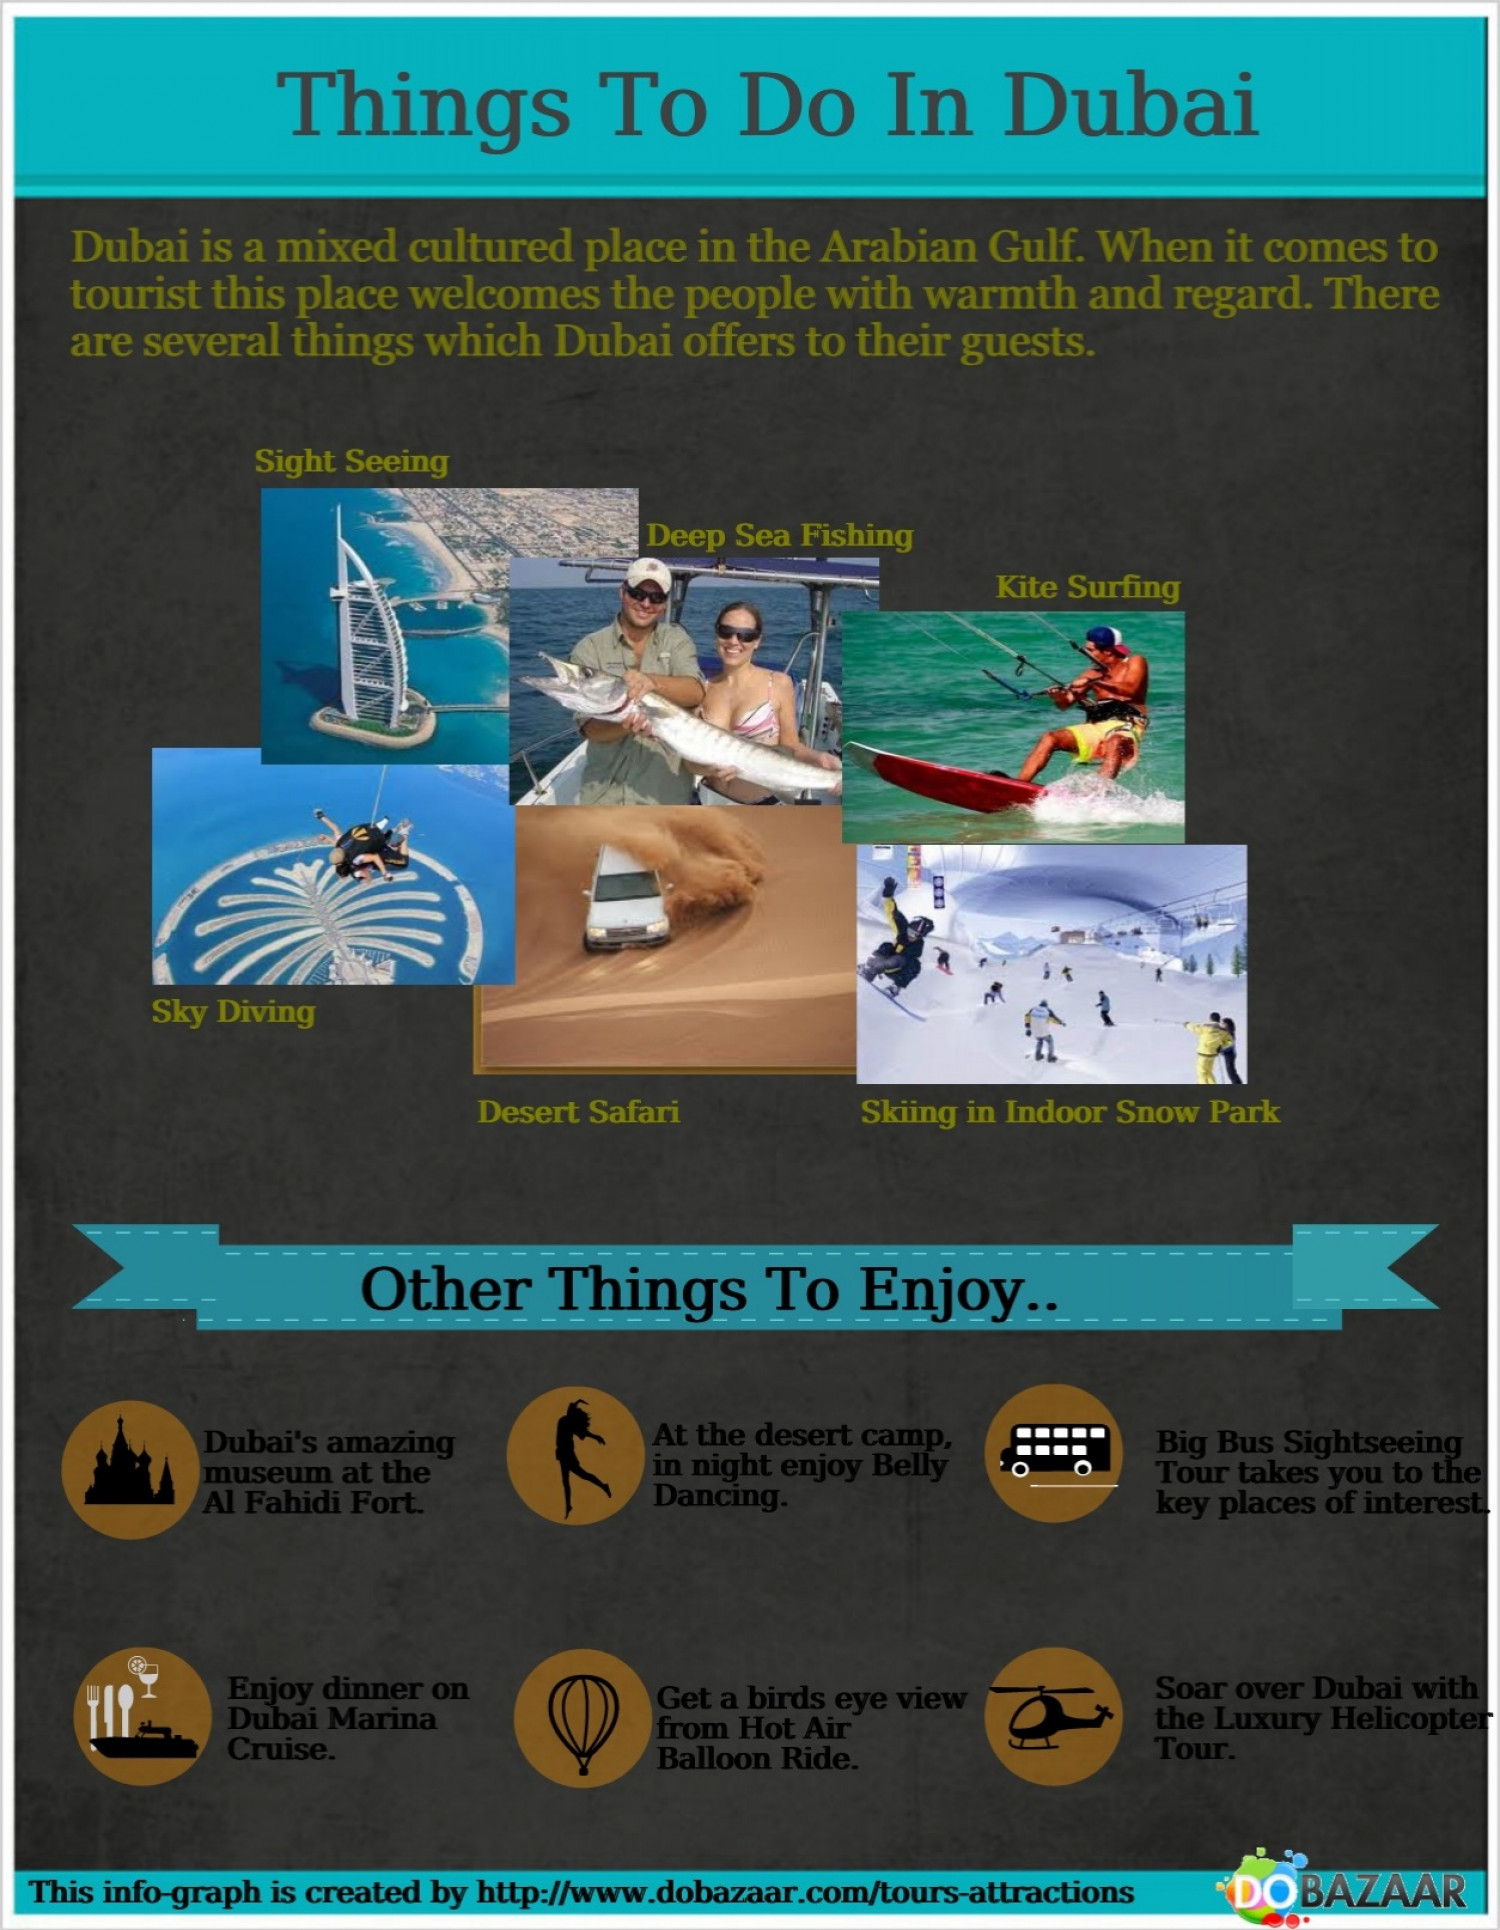 Things to Do in Dubai Infographic